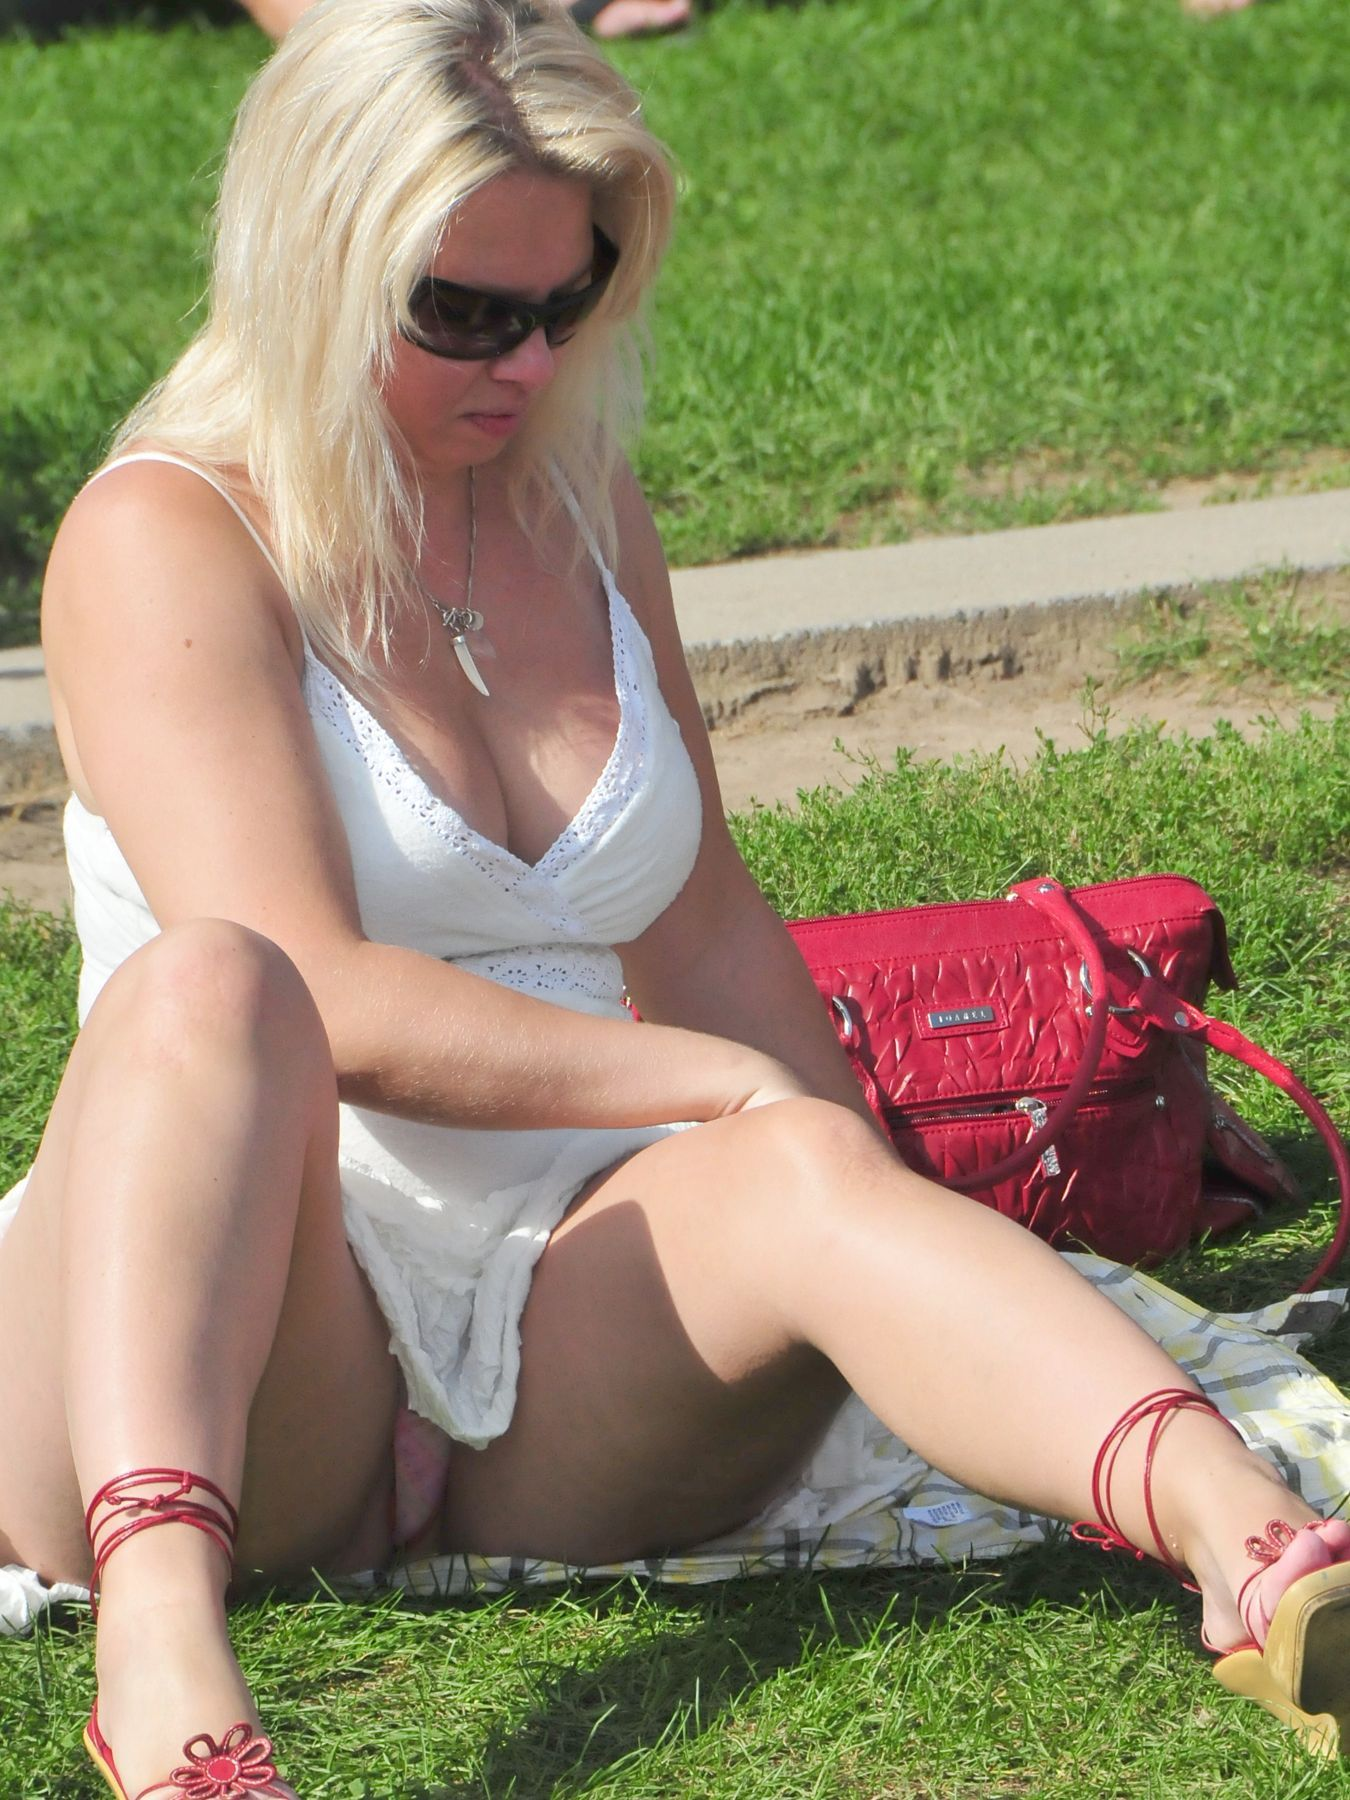 Candid upskirt powered by phpbb